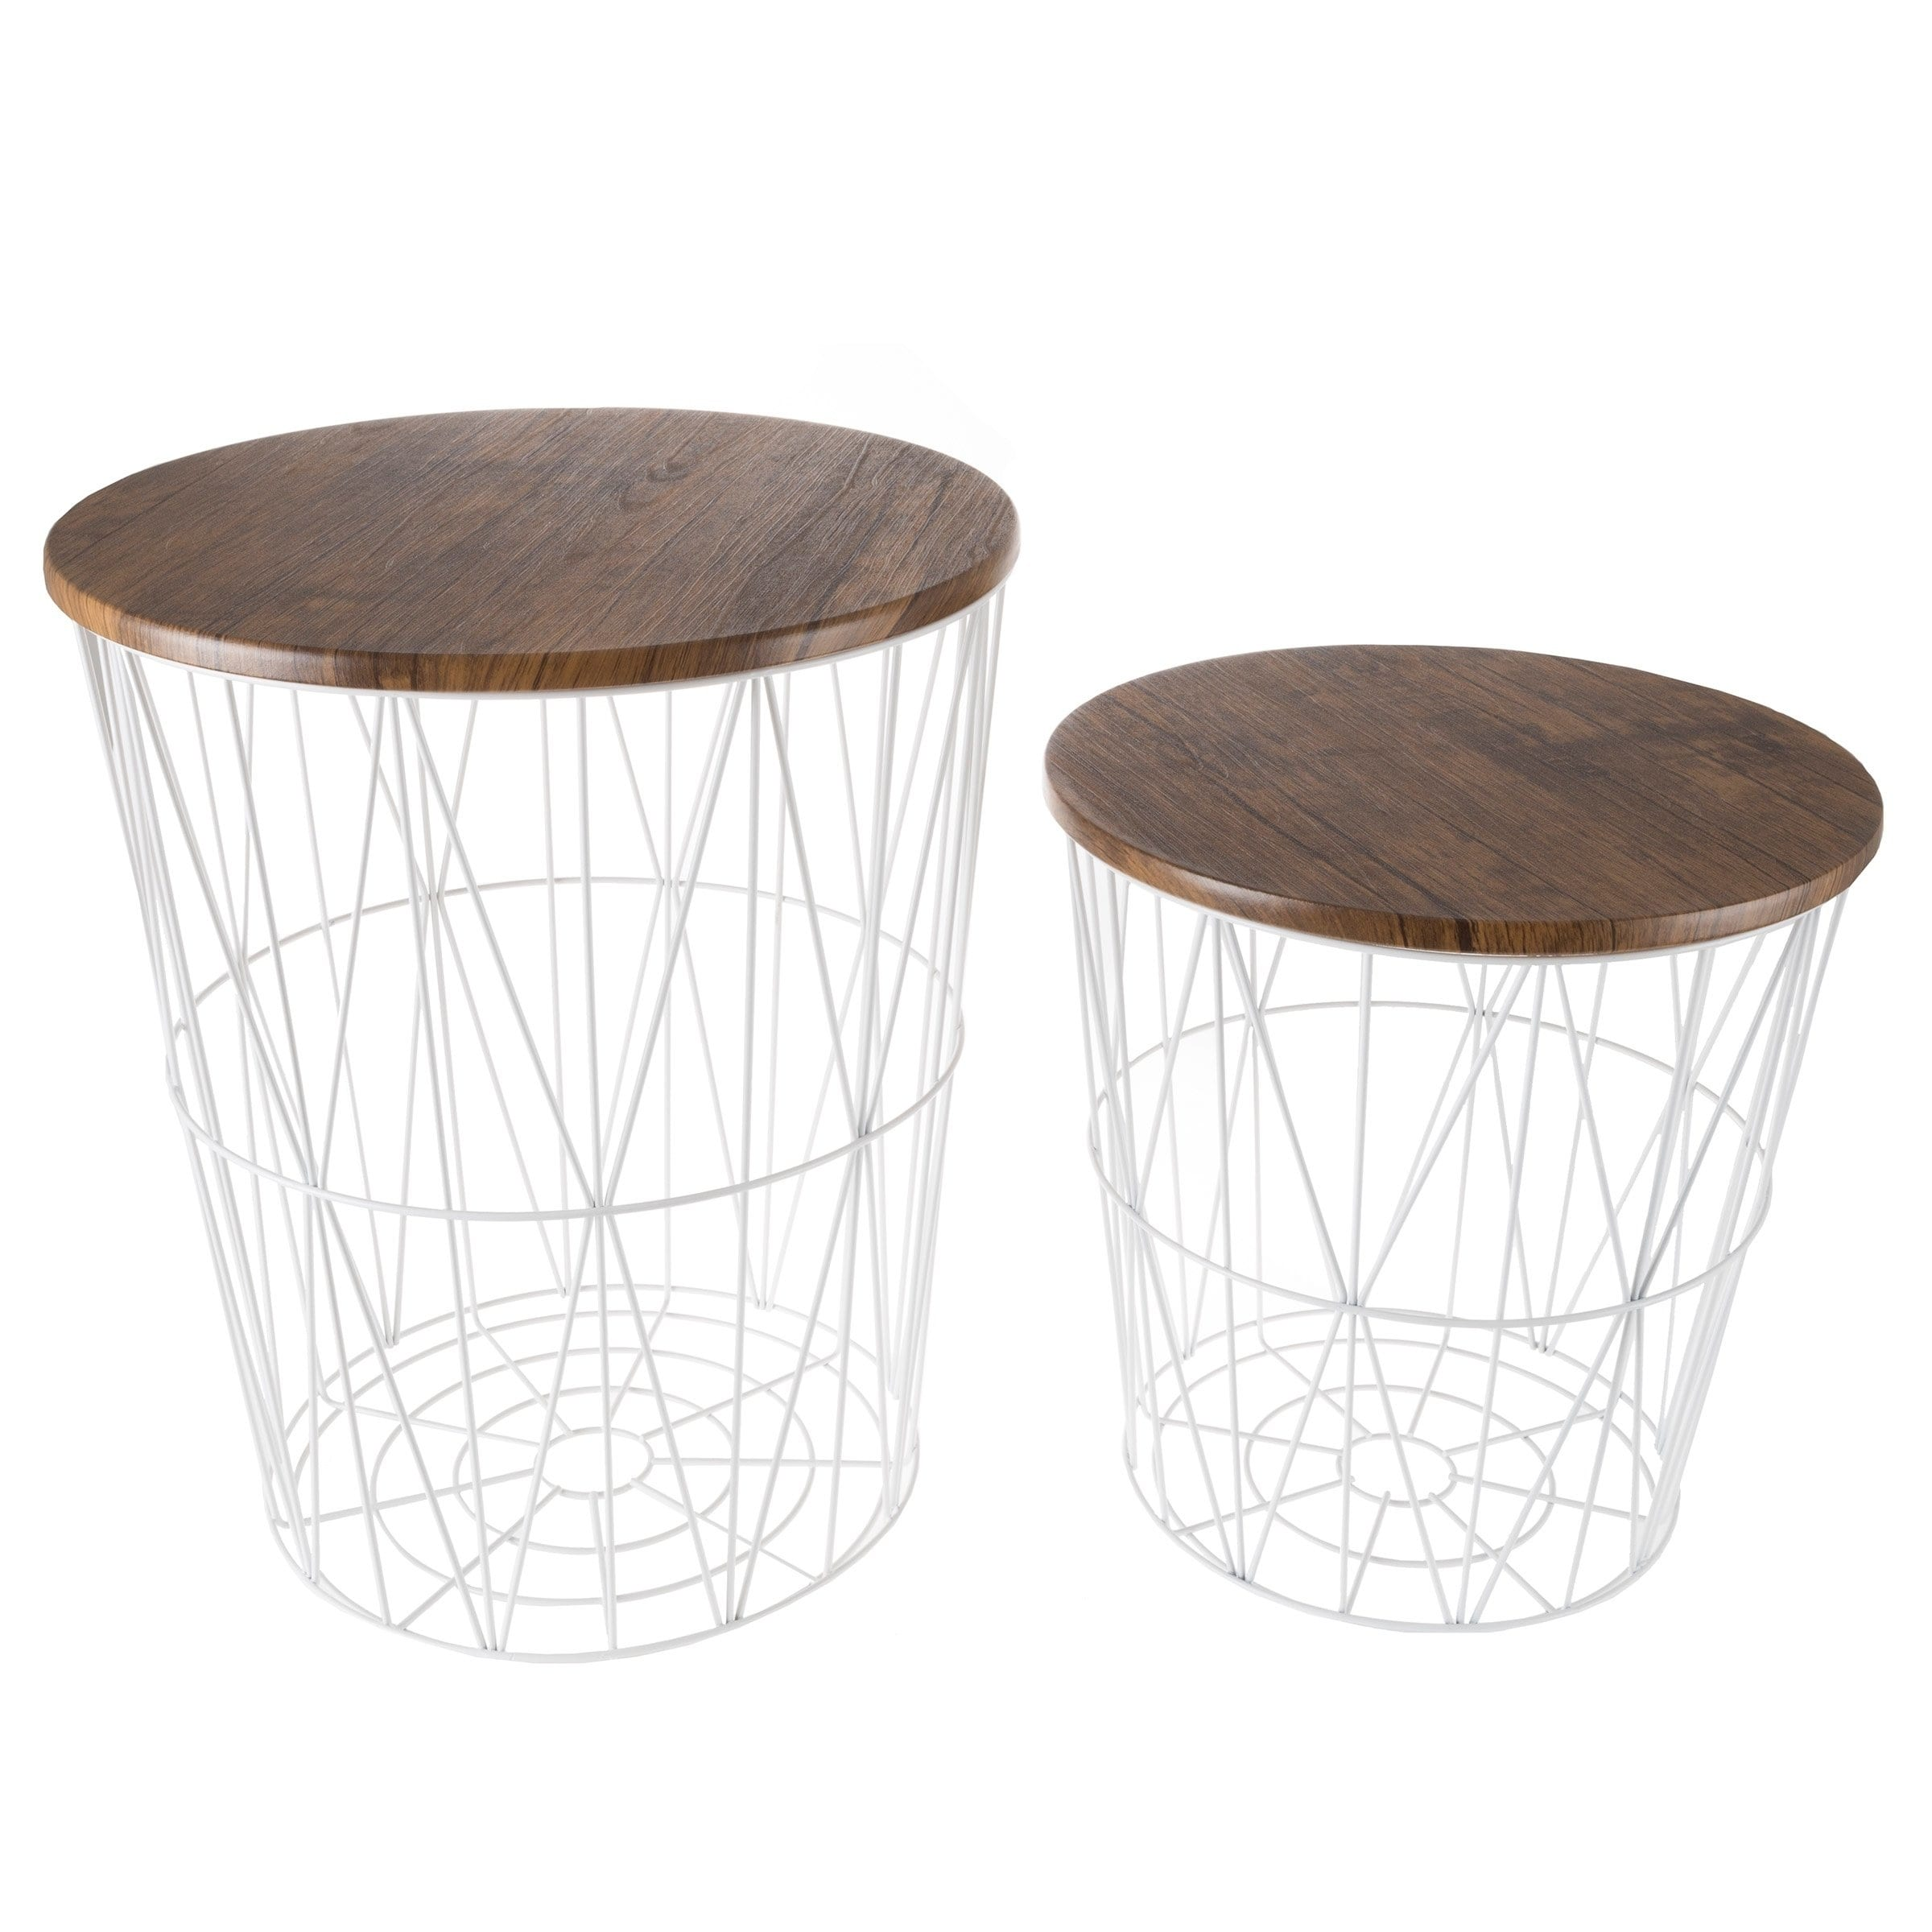 nesting end tables with storage set convertible round metal basket veneer wood top accent side lavish home table black room essentials antique dining chairs furniture toronto iron